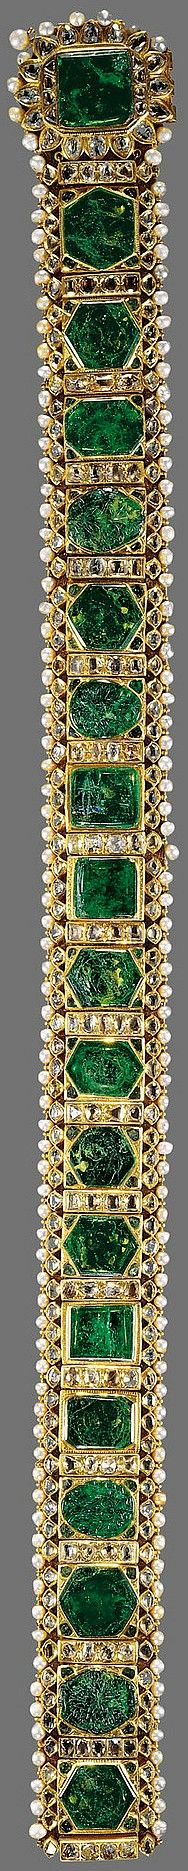 Indian emerald girdle,made for Maharajah Sher Singh (the emeralds inherited from Ranjit Singh), c.1840; taken / stolen (as part of the Lahore Treasury) by the Directors of the East India Company, 1849; by whom given to Queen Victoria in 1851. The girdle, which is of traditional Mughal form, was made using emeralds - some of which may be seventeenth-century - that had belonged to his father, Runjit Singh, 'Lion of the Punjab'. The Royal Collection.